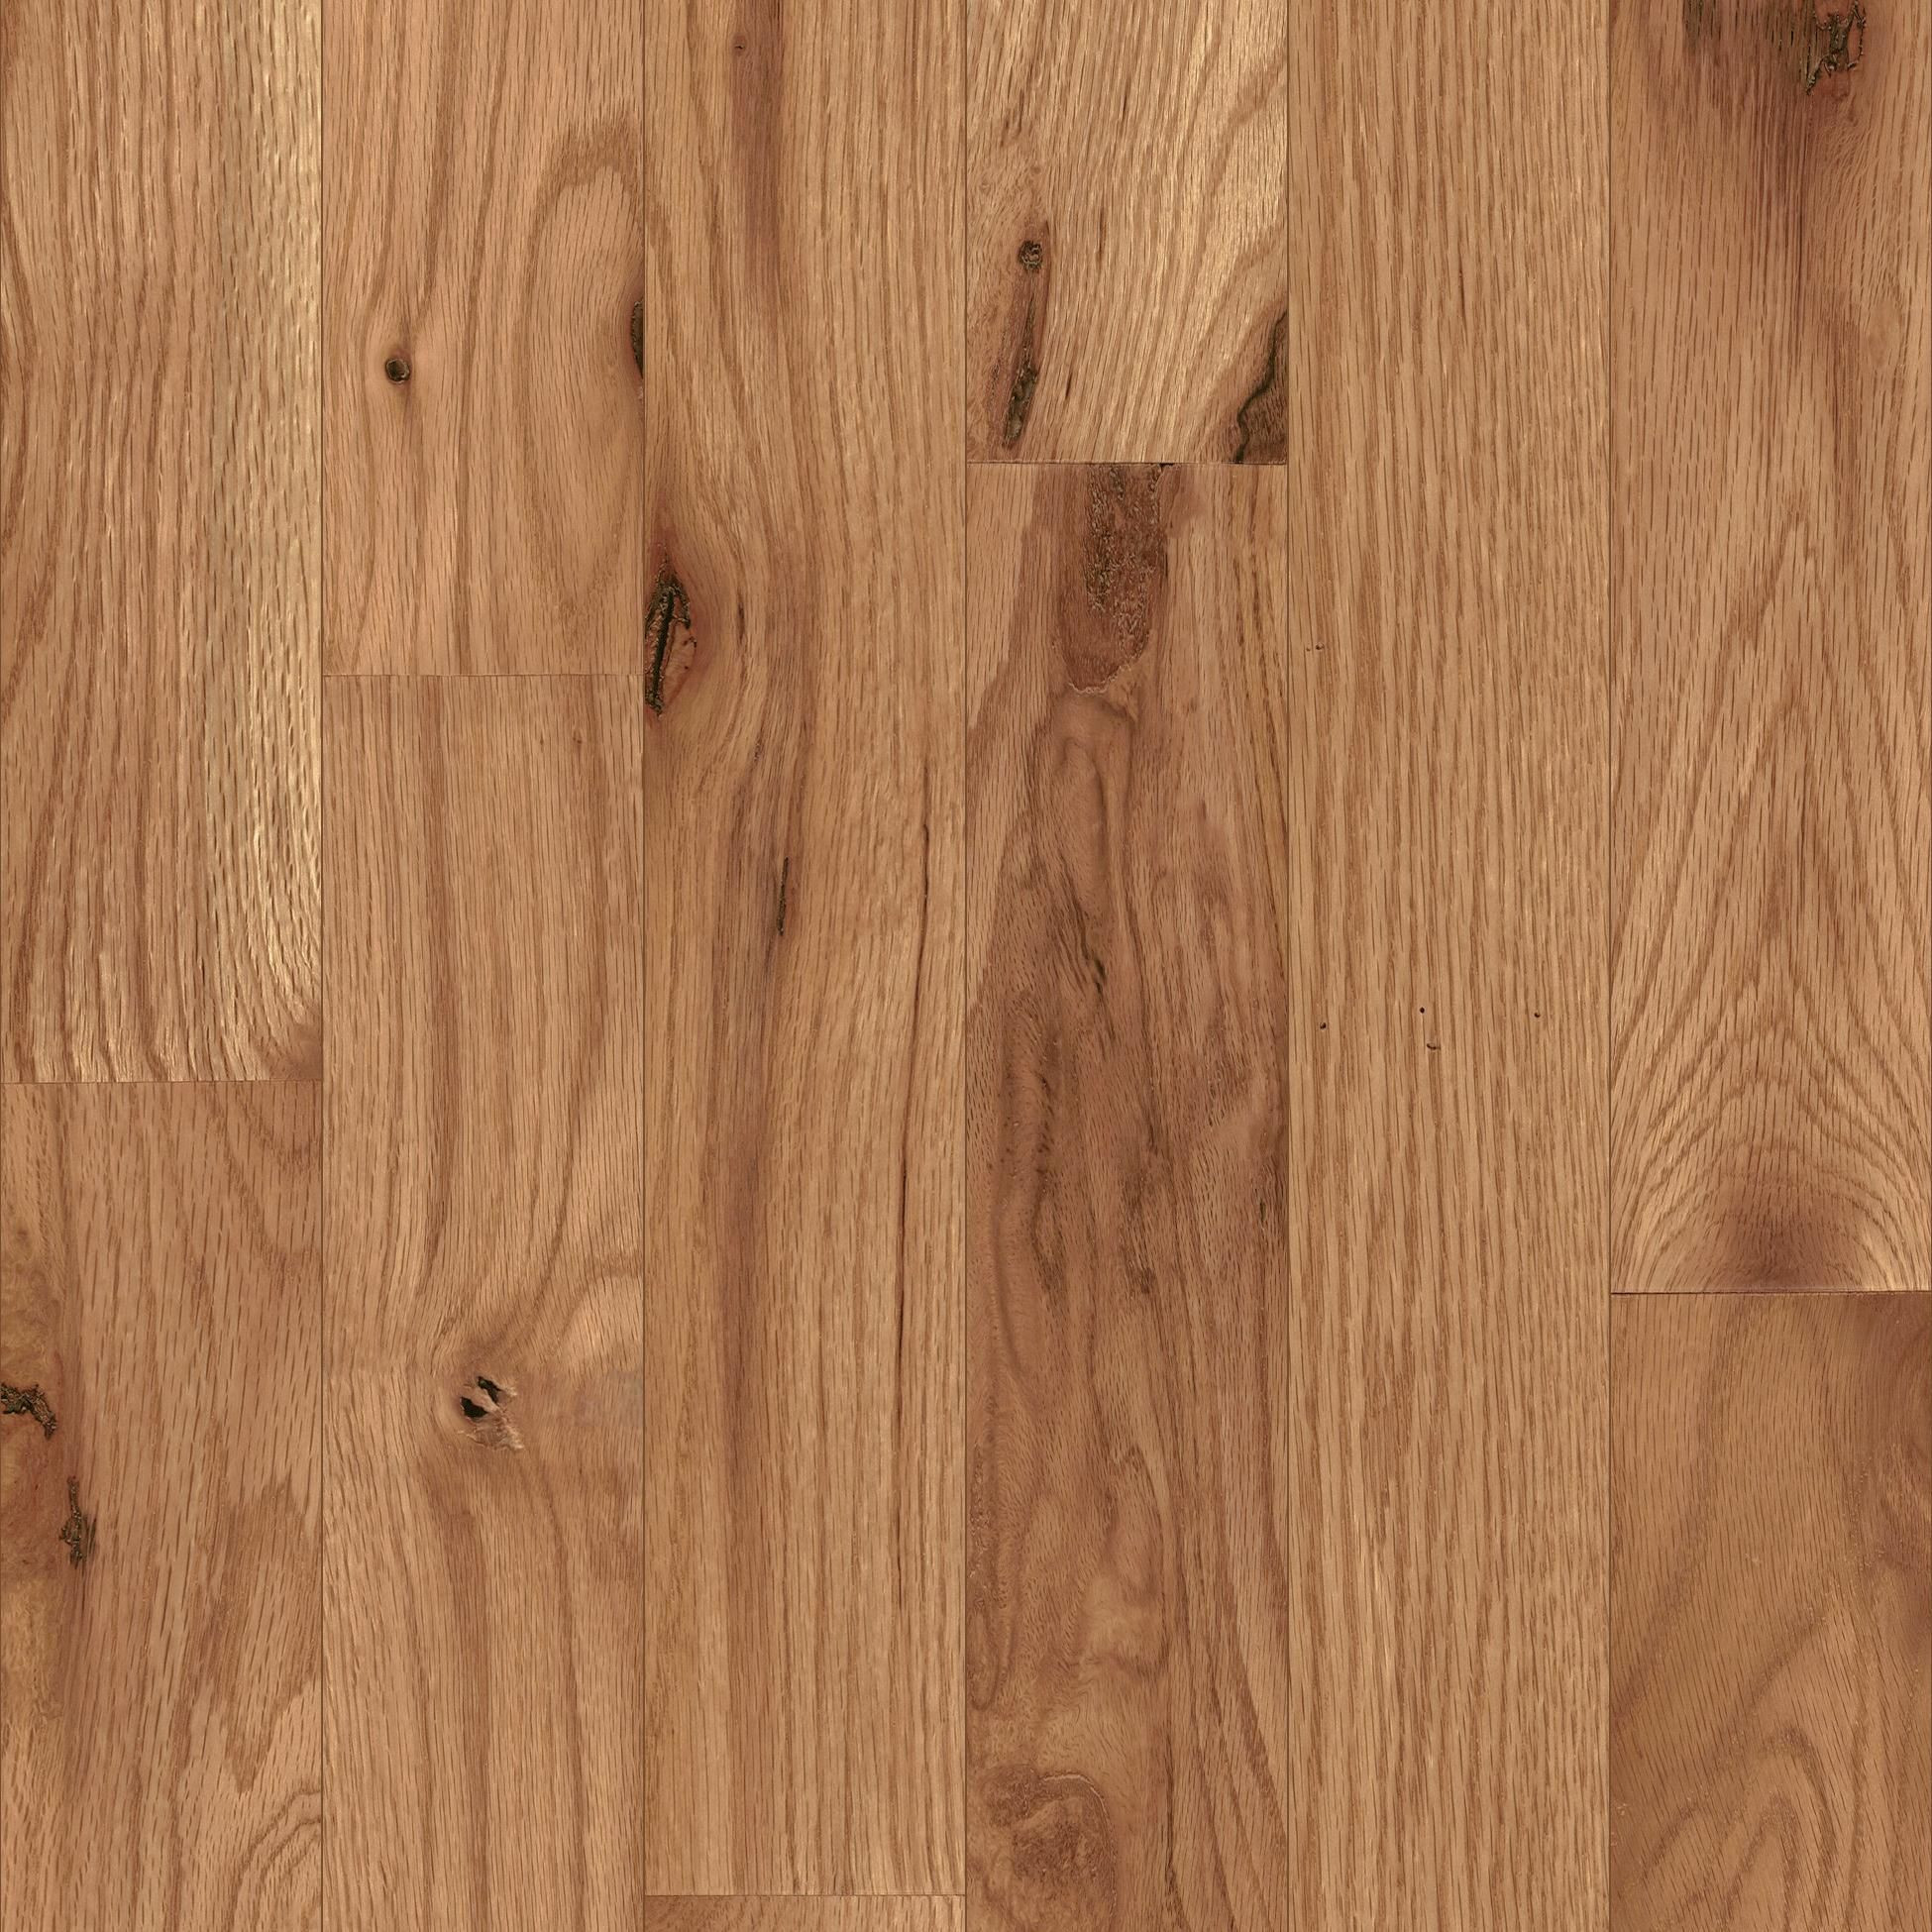 Blue Ridge Hardwood Flooring Home Depot Of Mohawk Eastridge Value Collection 3 1 4 Wide Oak Natural solid within Mohawk Eastridge Value Collection 3 1 4 Wide Oak Natural solid Hardwood Flooring